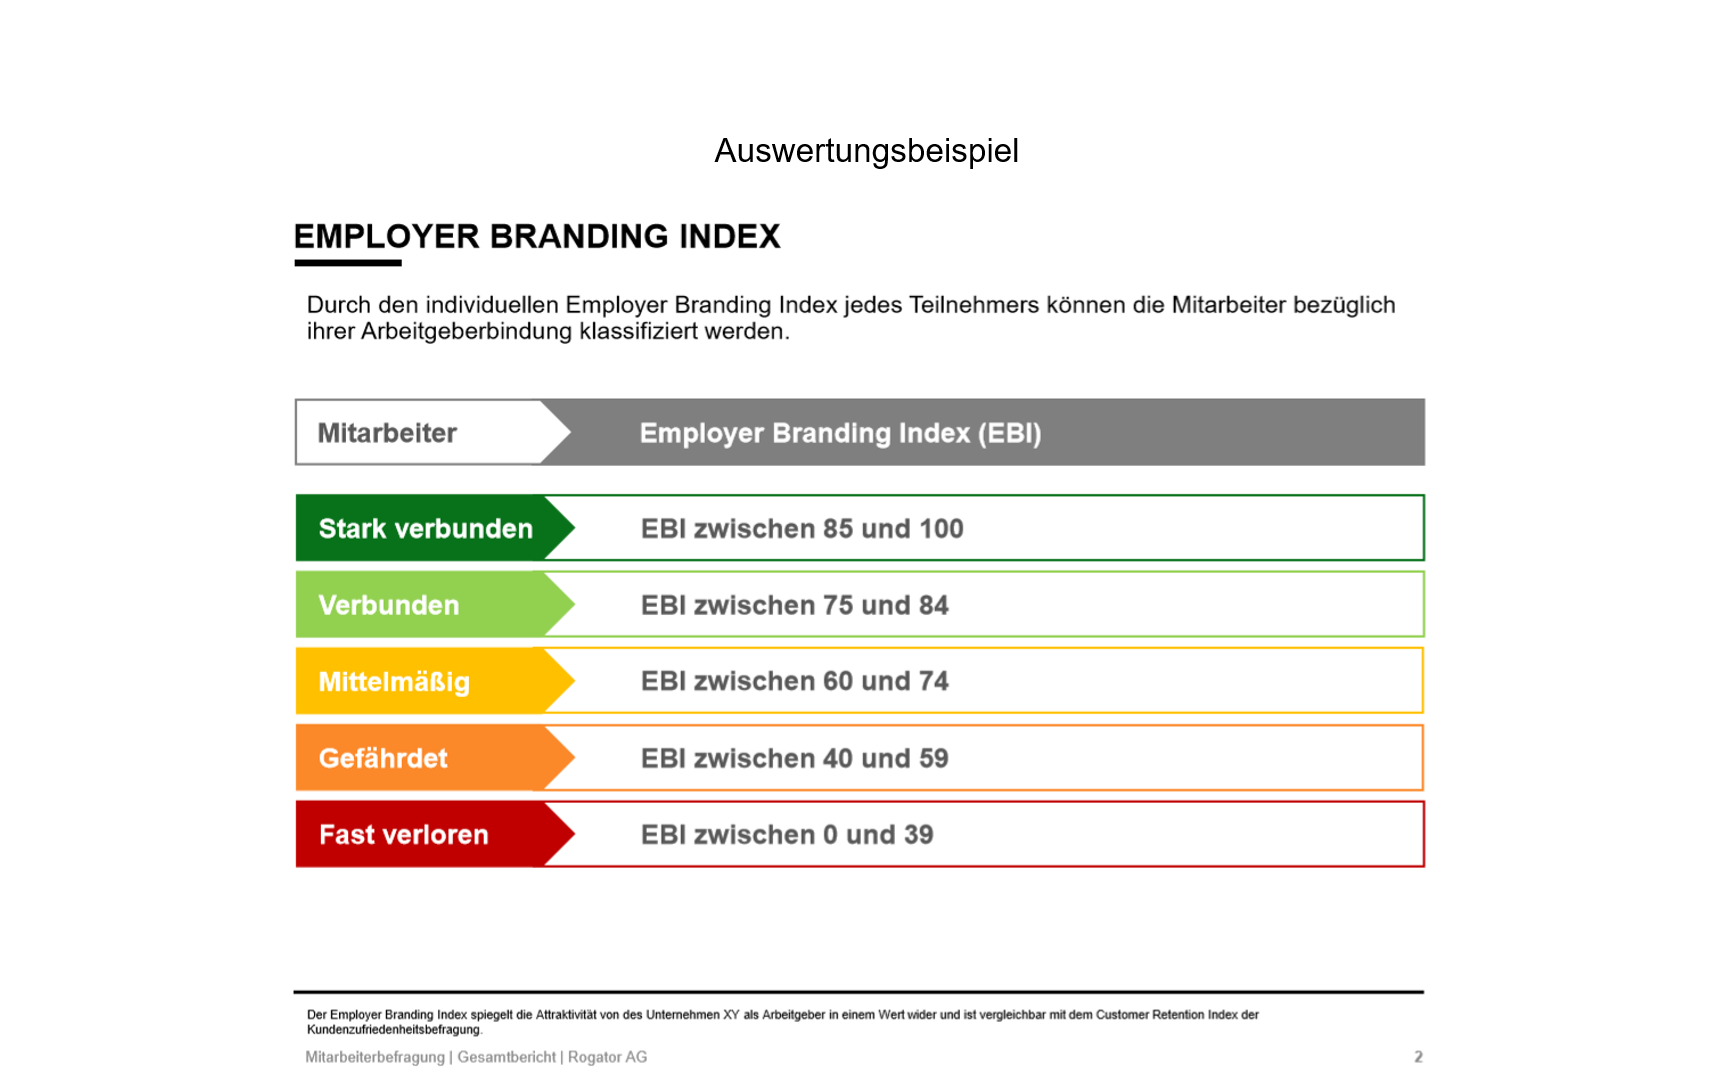 Employer Branding_Auswertungsbeispiel1